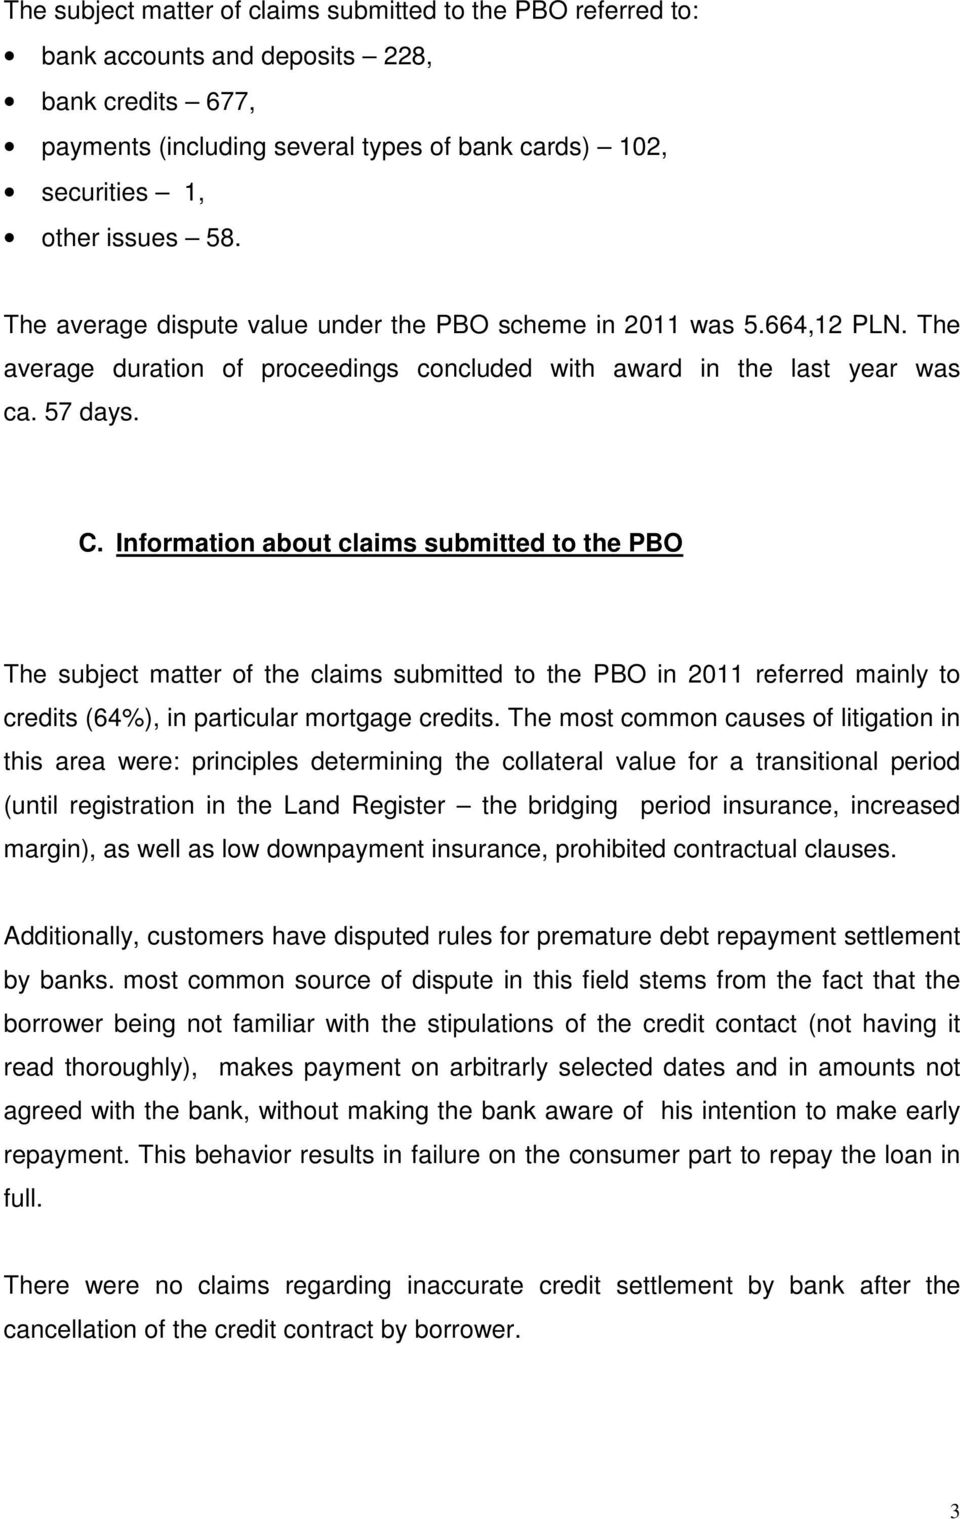 Information about claims submitted to the PBO The subject matter of the claims submitted to the PBO in 2011 referred mainly to credits (64%), in particular mortgage credits.